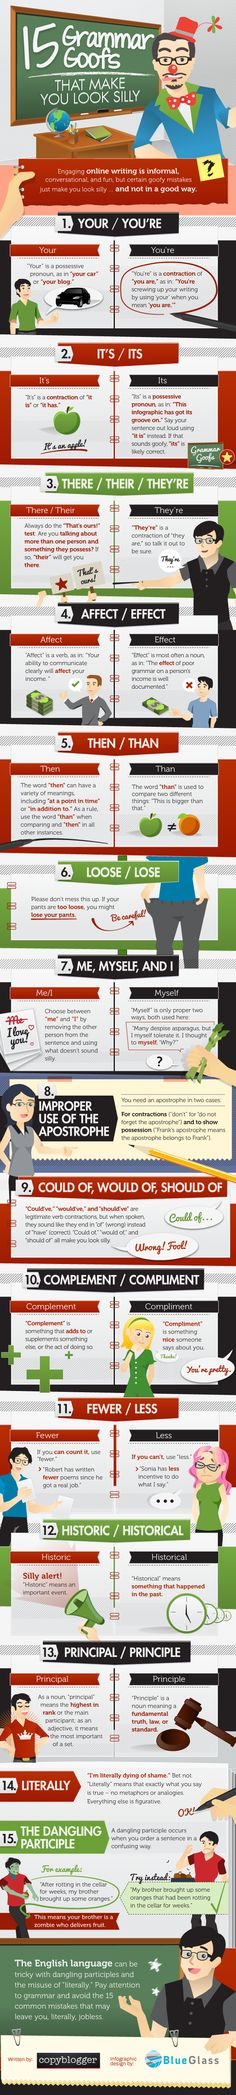 Common grammar mistakes; make sure you avoid these errors in your resume!